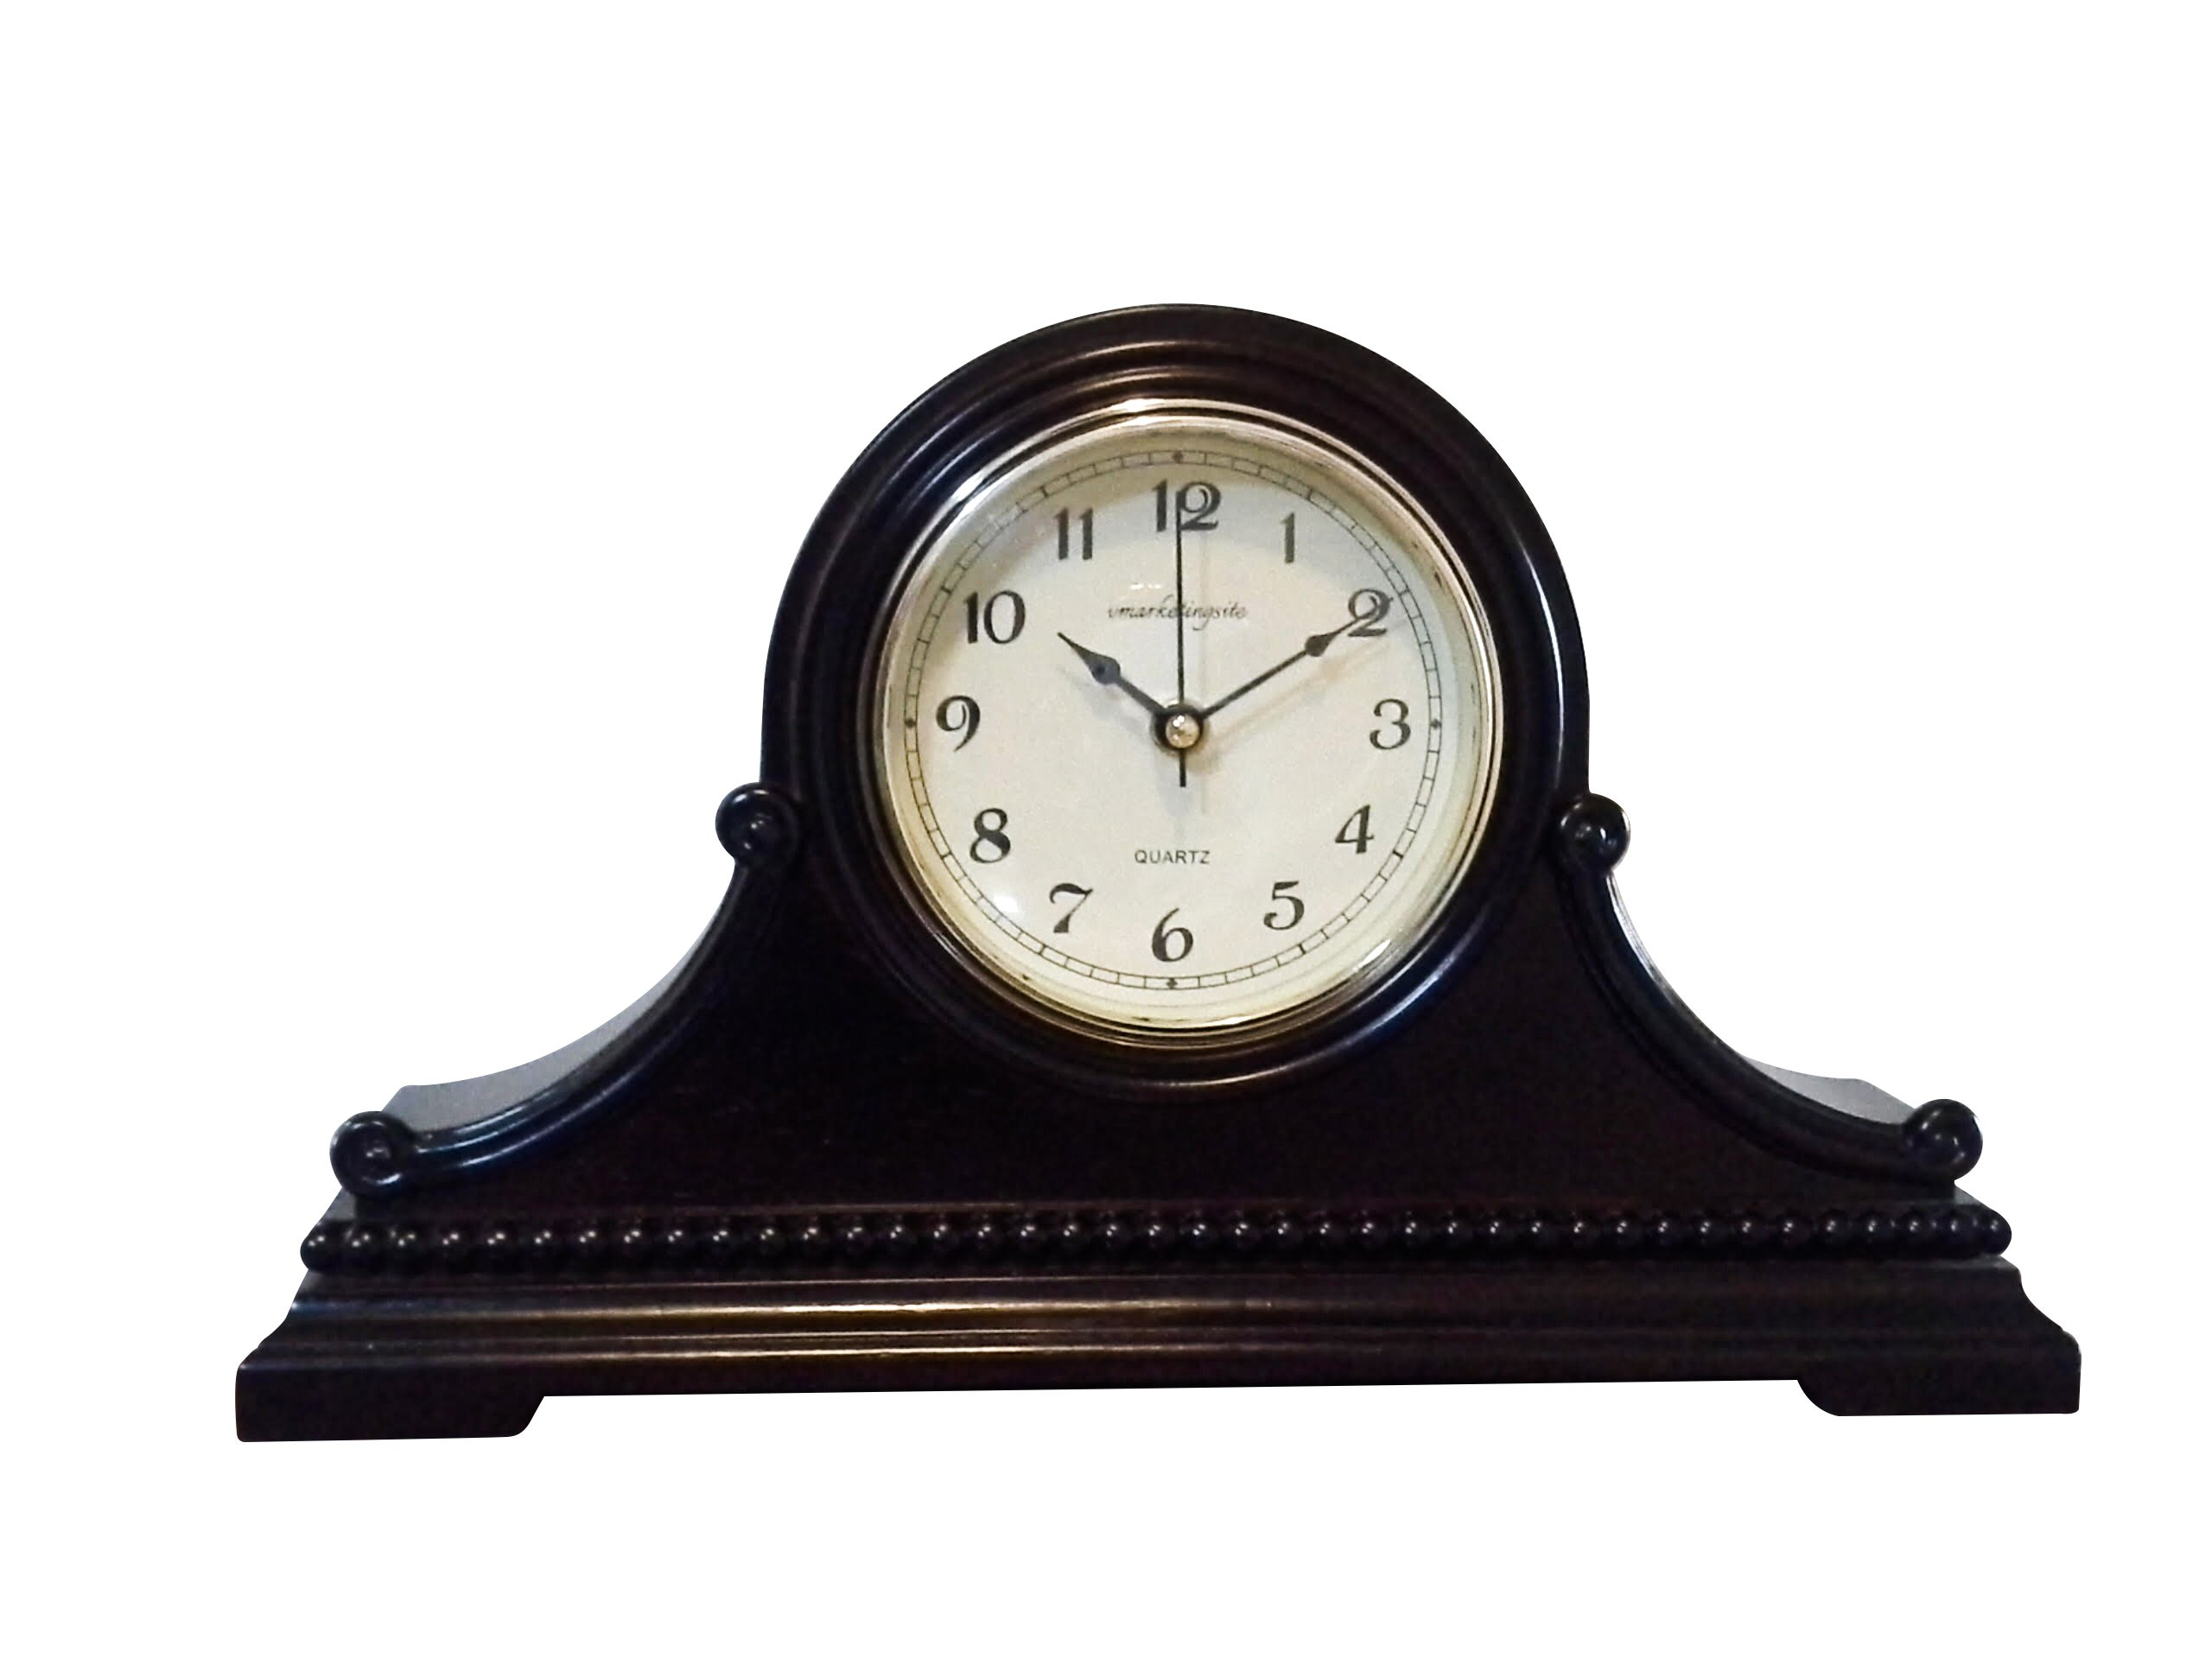 Vmarketingsite Decorative Mantel Clock with Westminster Chime, 9'' x 16'' x 3'', Walnut